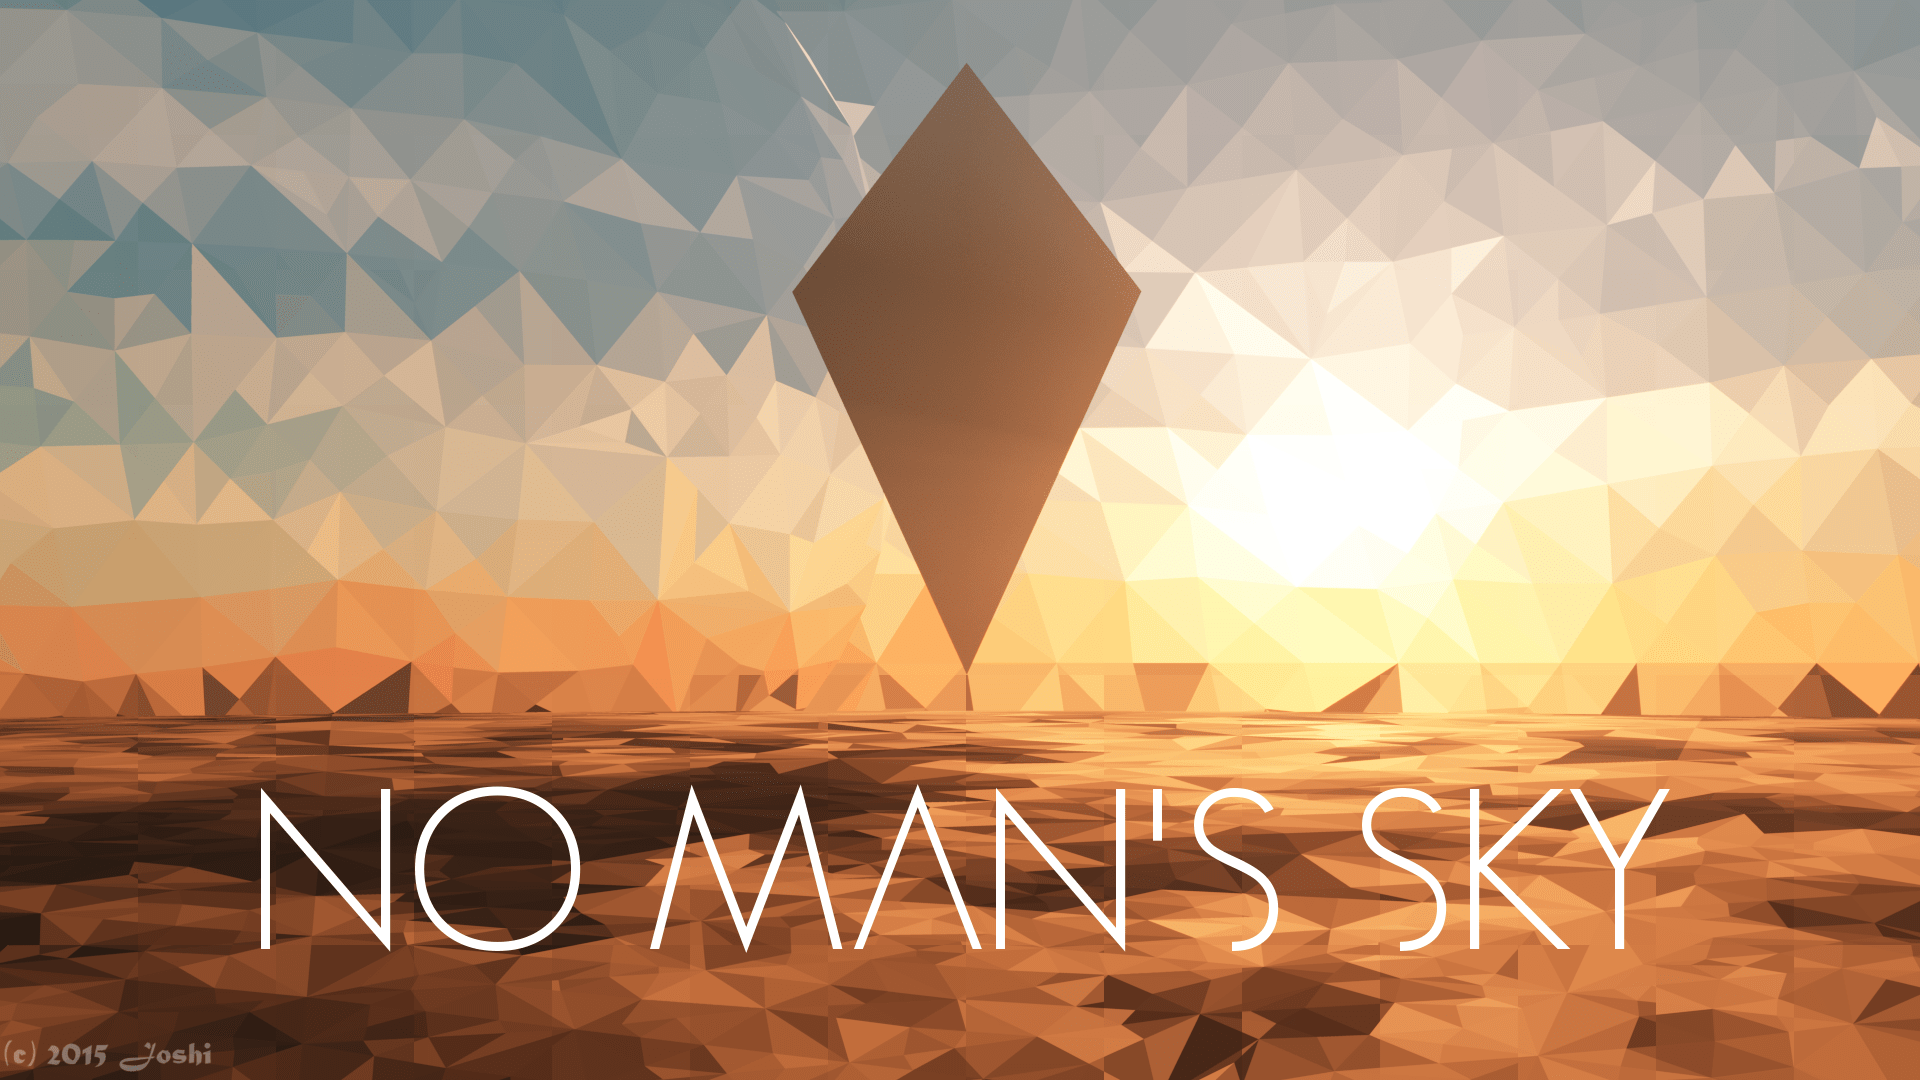 Low Poly Iphone X Wallpaper No Man S Sky Full Hd Wallpaper And Background 1920x1080